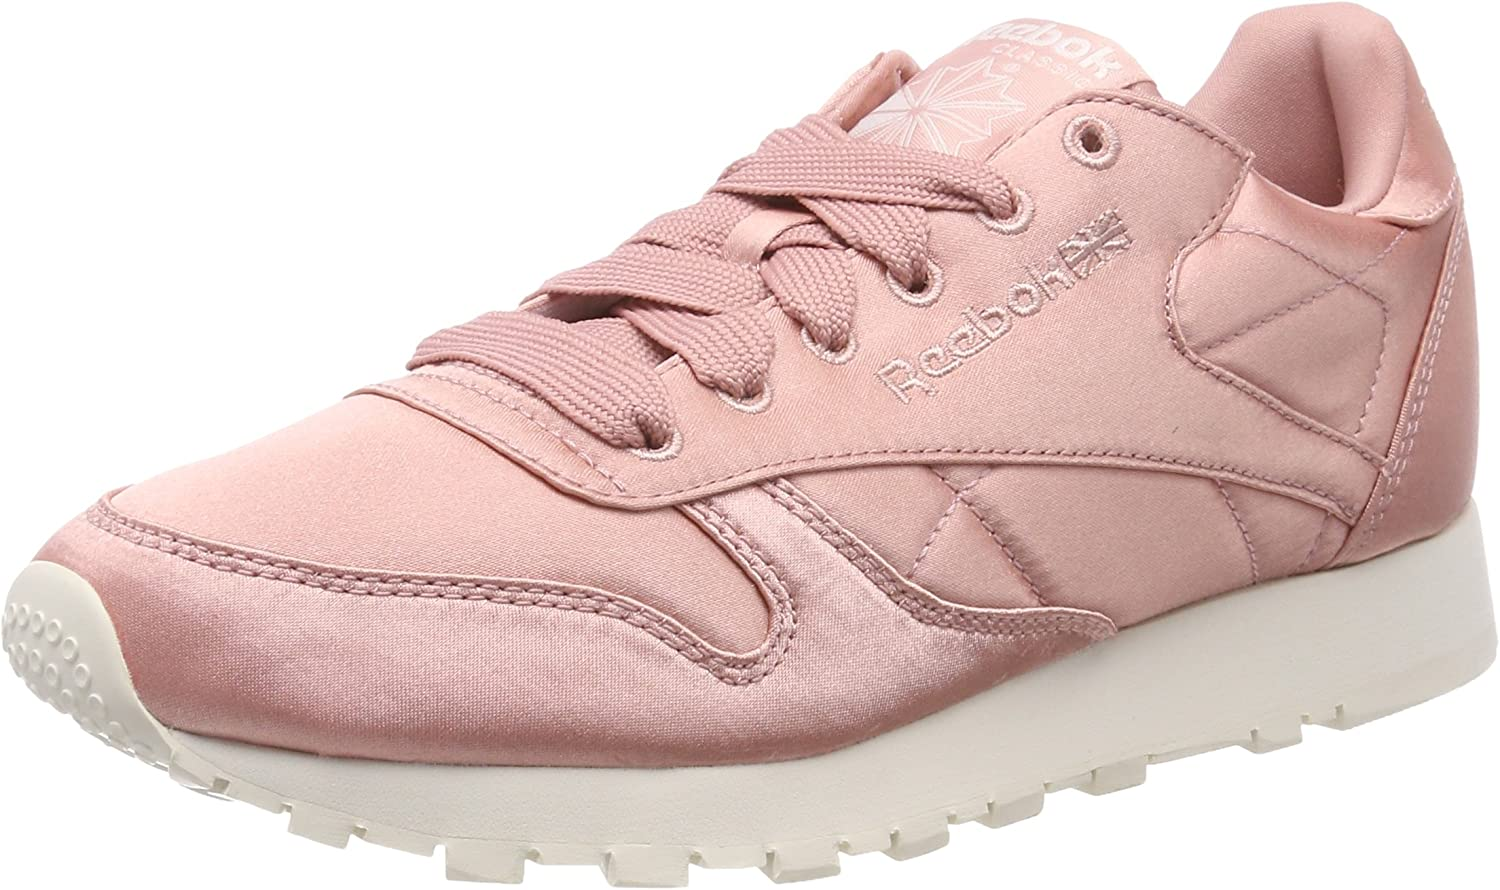 Classic Leather Satin Low-Top Sneakers